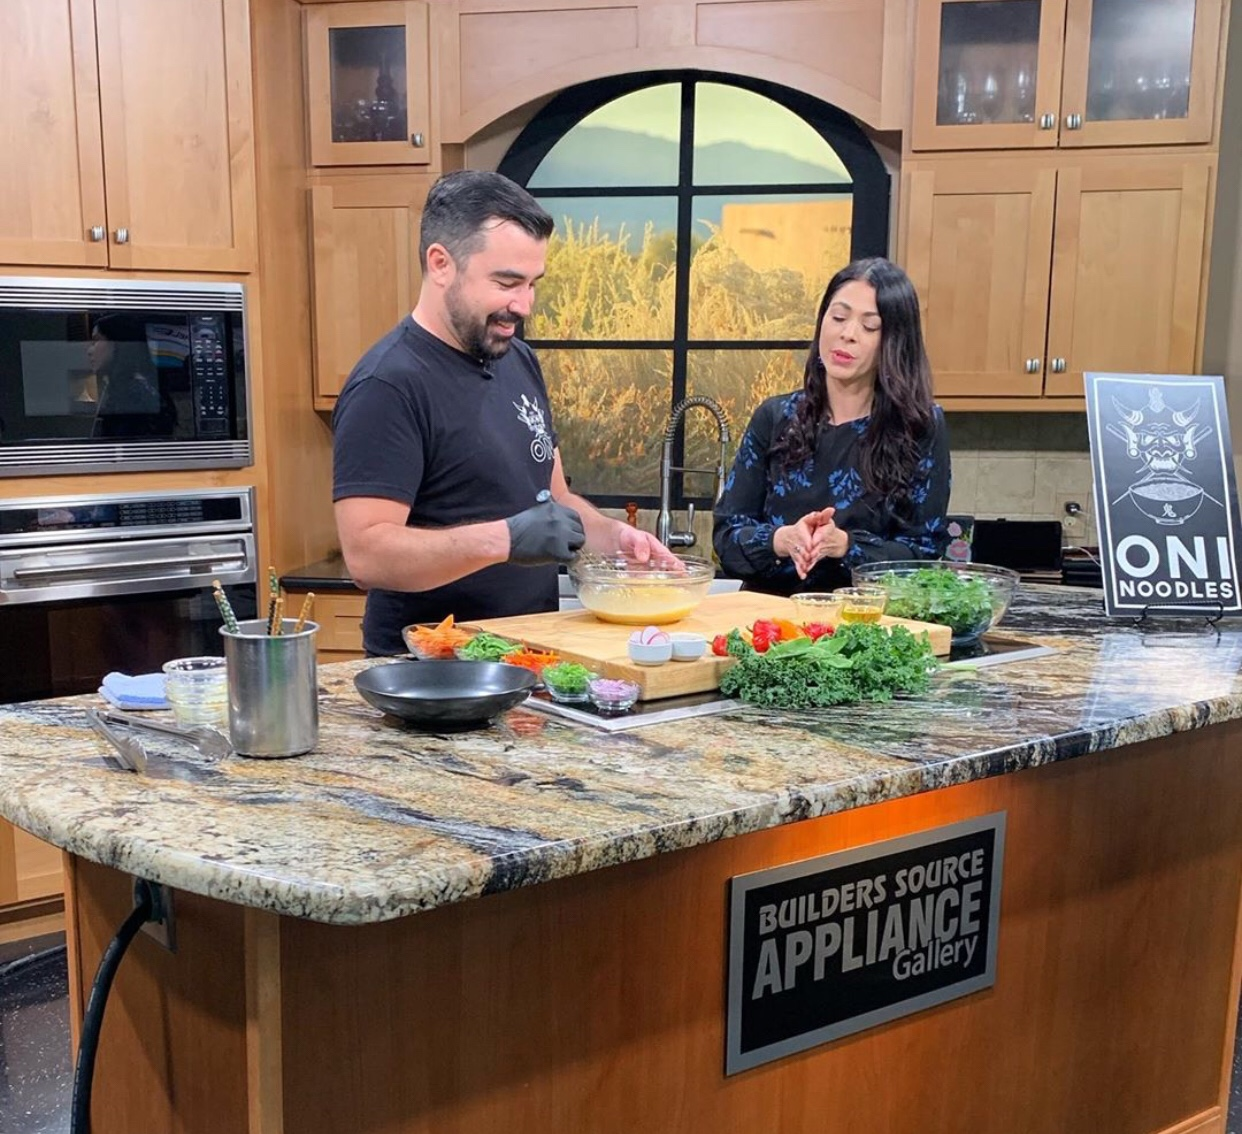 Oni's co-owner/ Chef  David Gaspar De Alba's cooking demo New Mexico Living on Oct 1, 2019.